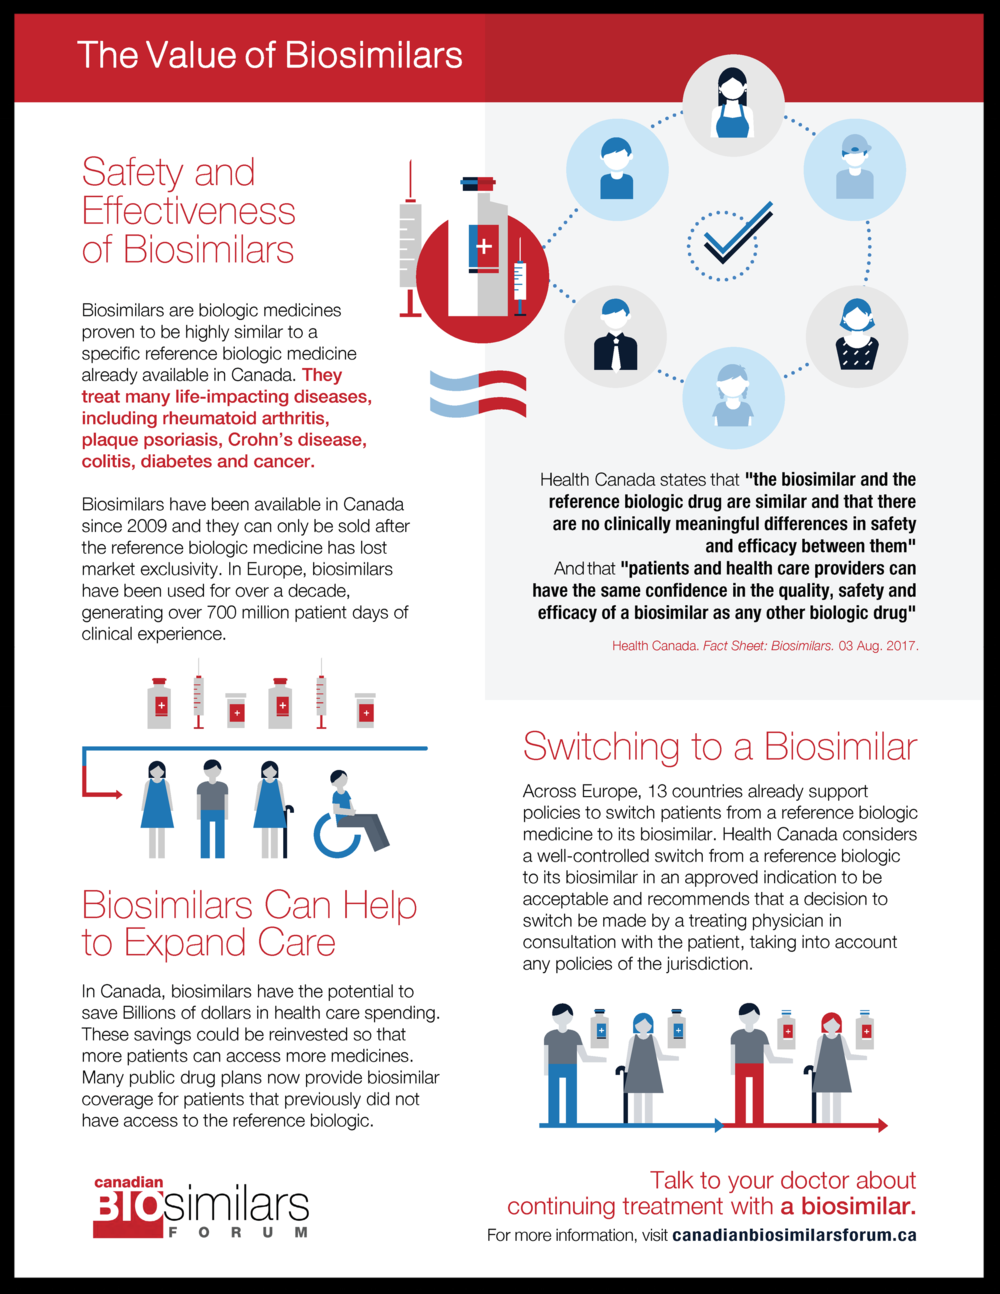 The Value of Biosimilars Infographic.png